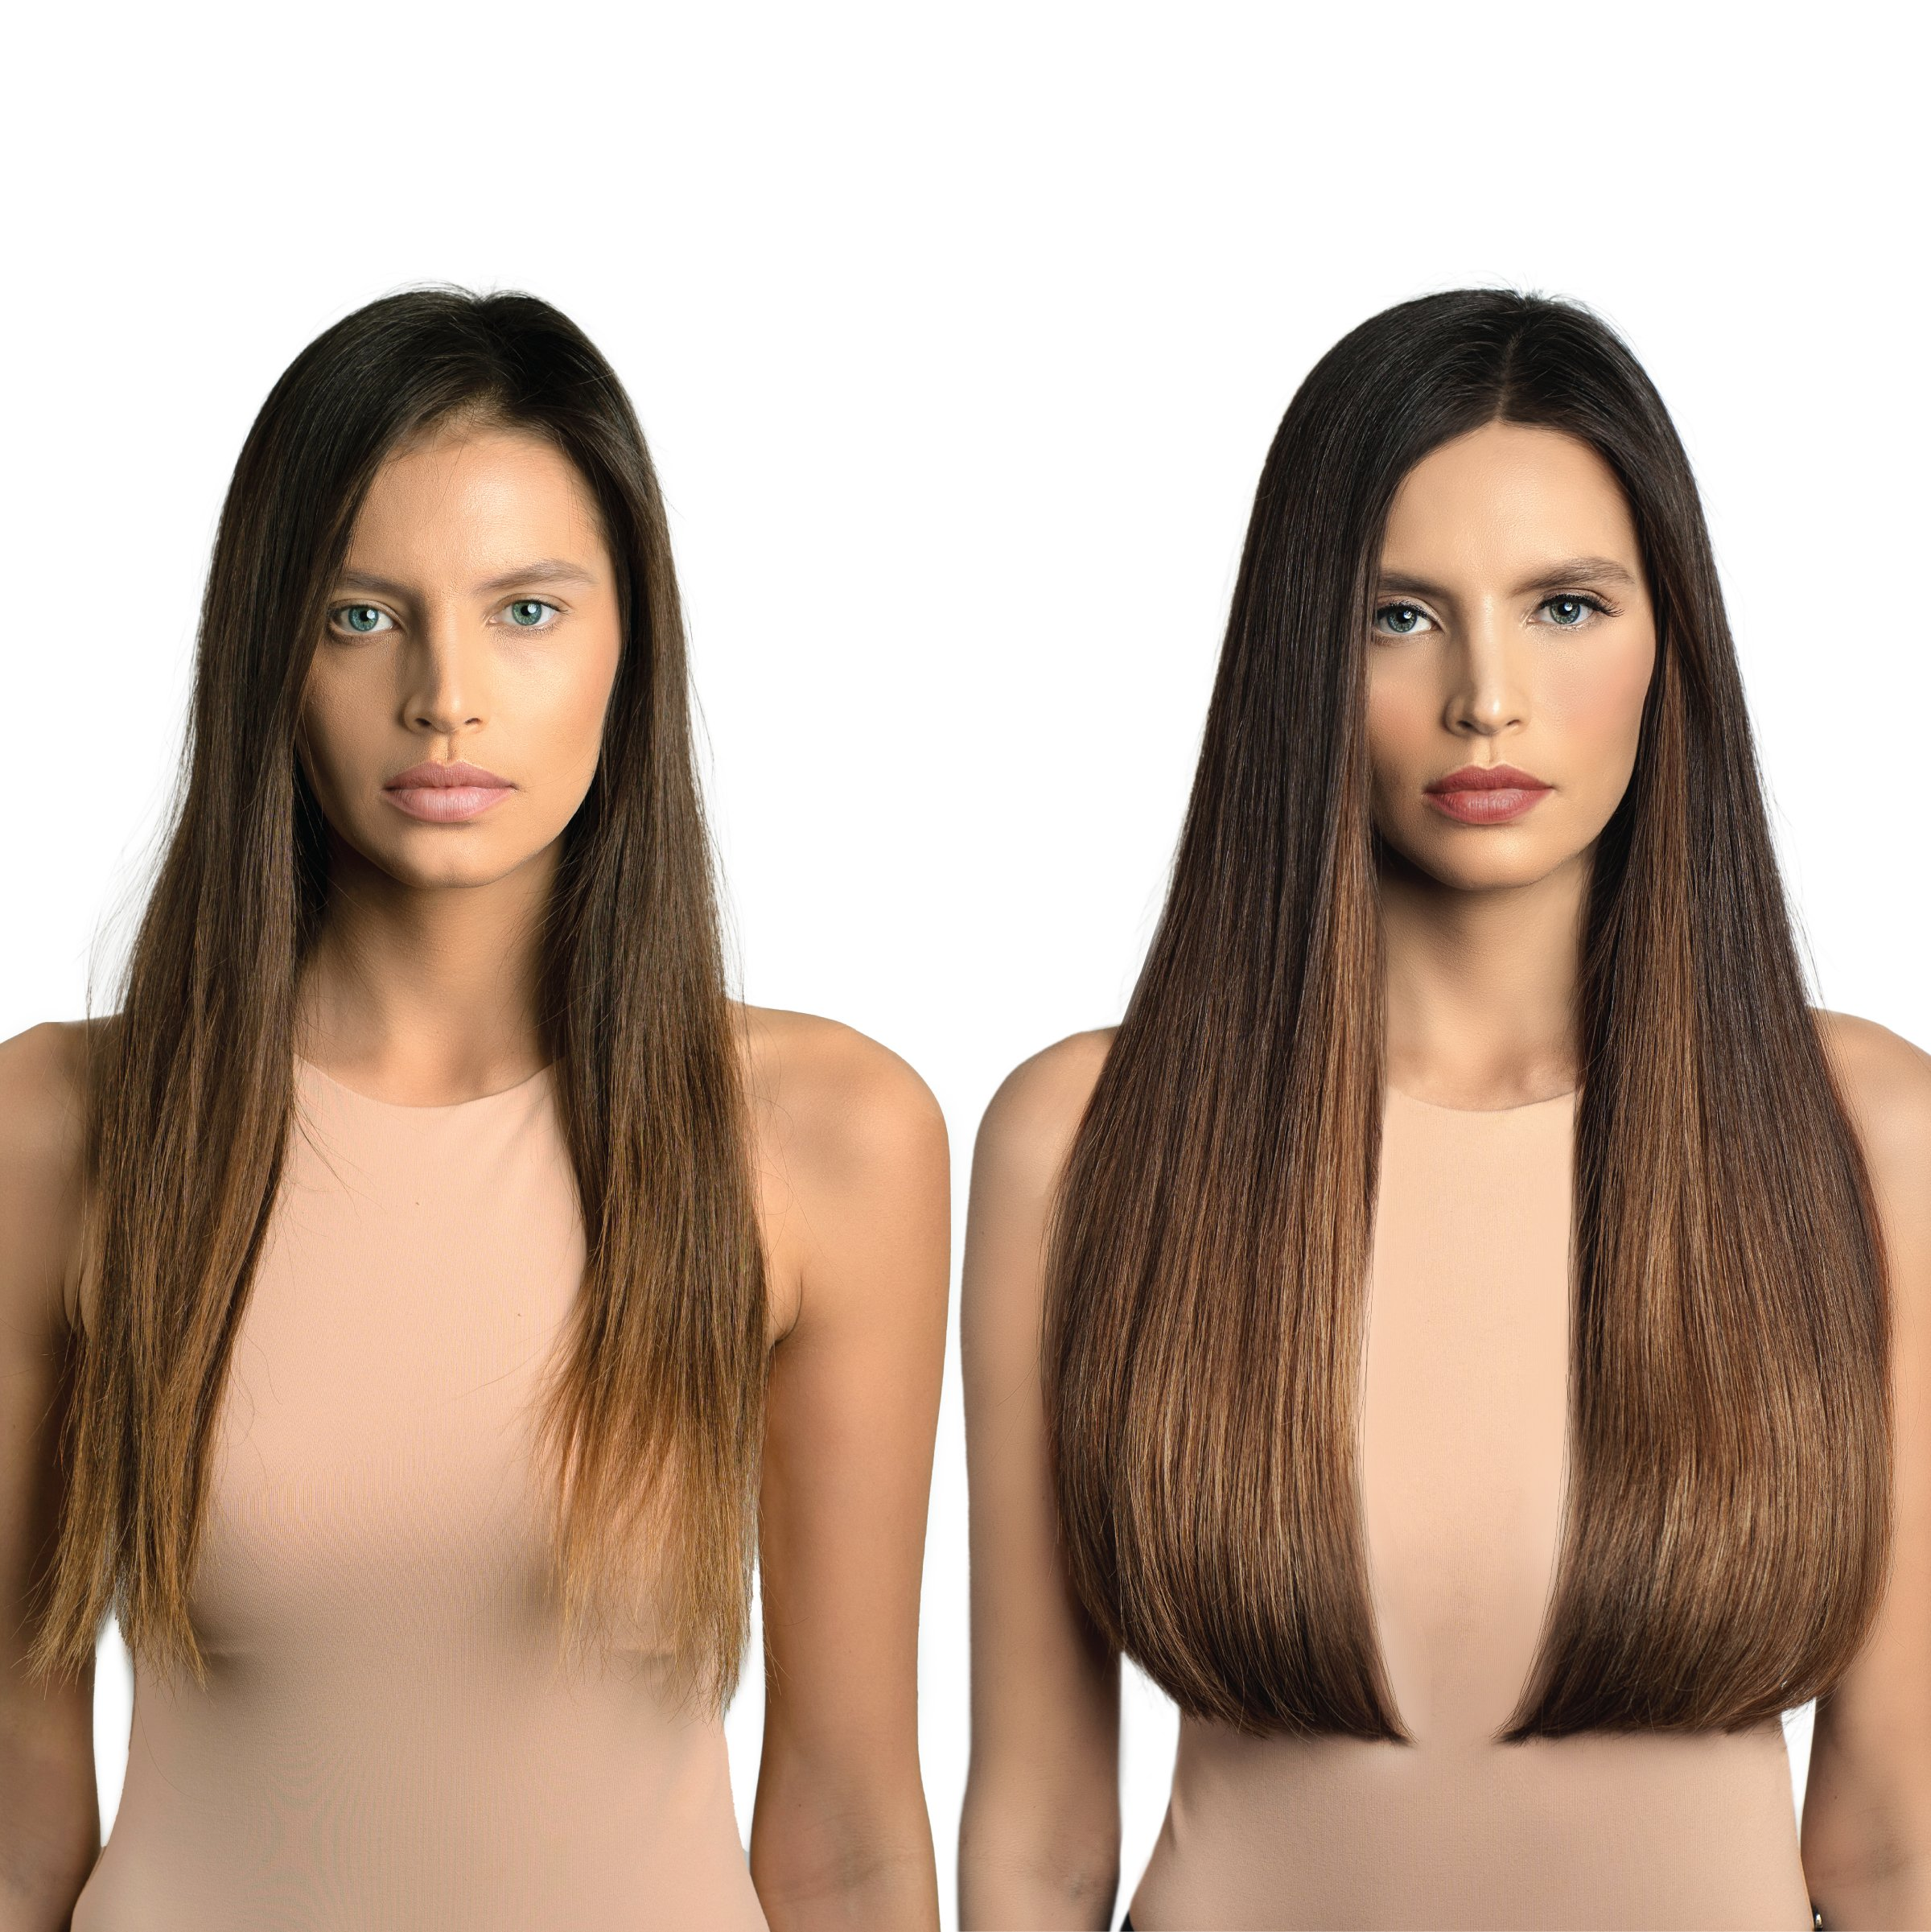 Hair Extensions by the Numbers: Determining Hourly Rates, How To Charge, and the Revenue Opportunity for Your Salon